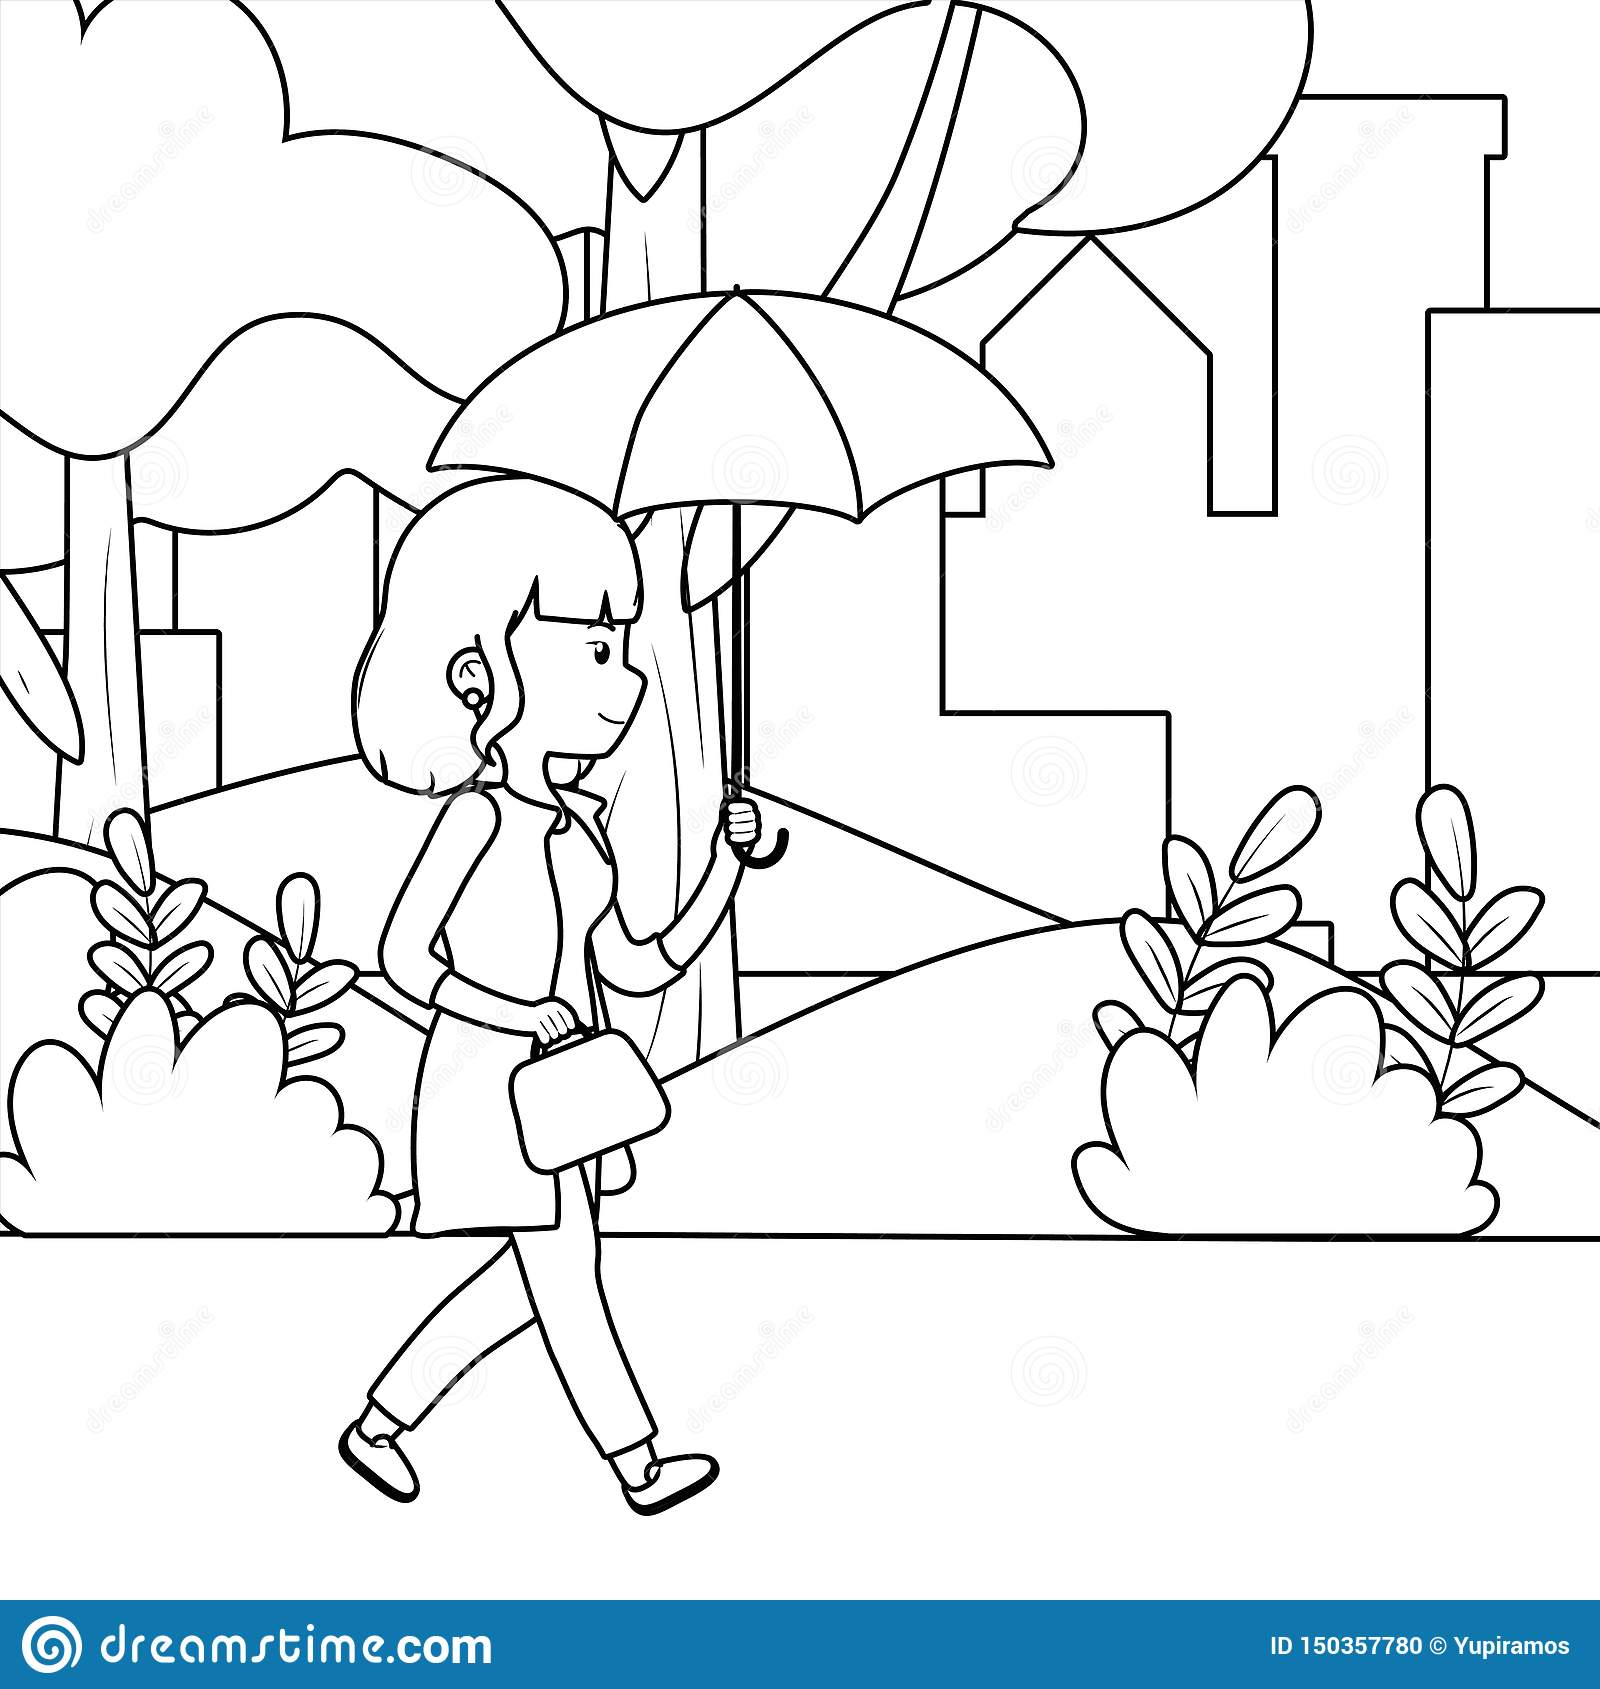 Woman cartoon in the park design